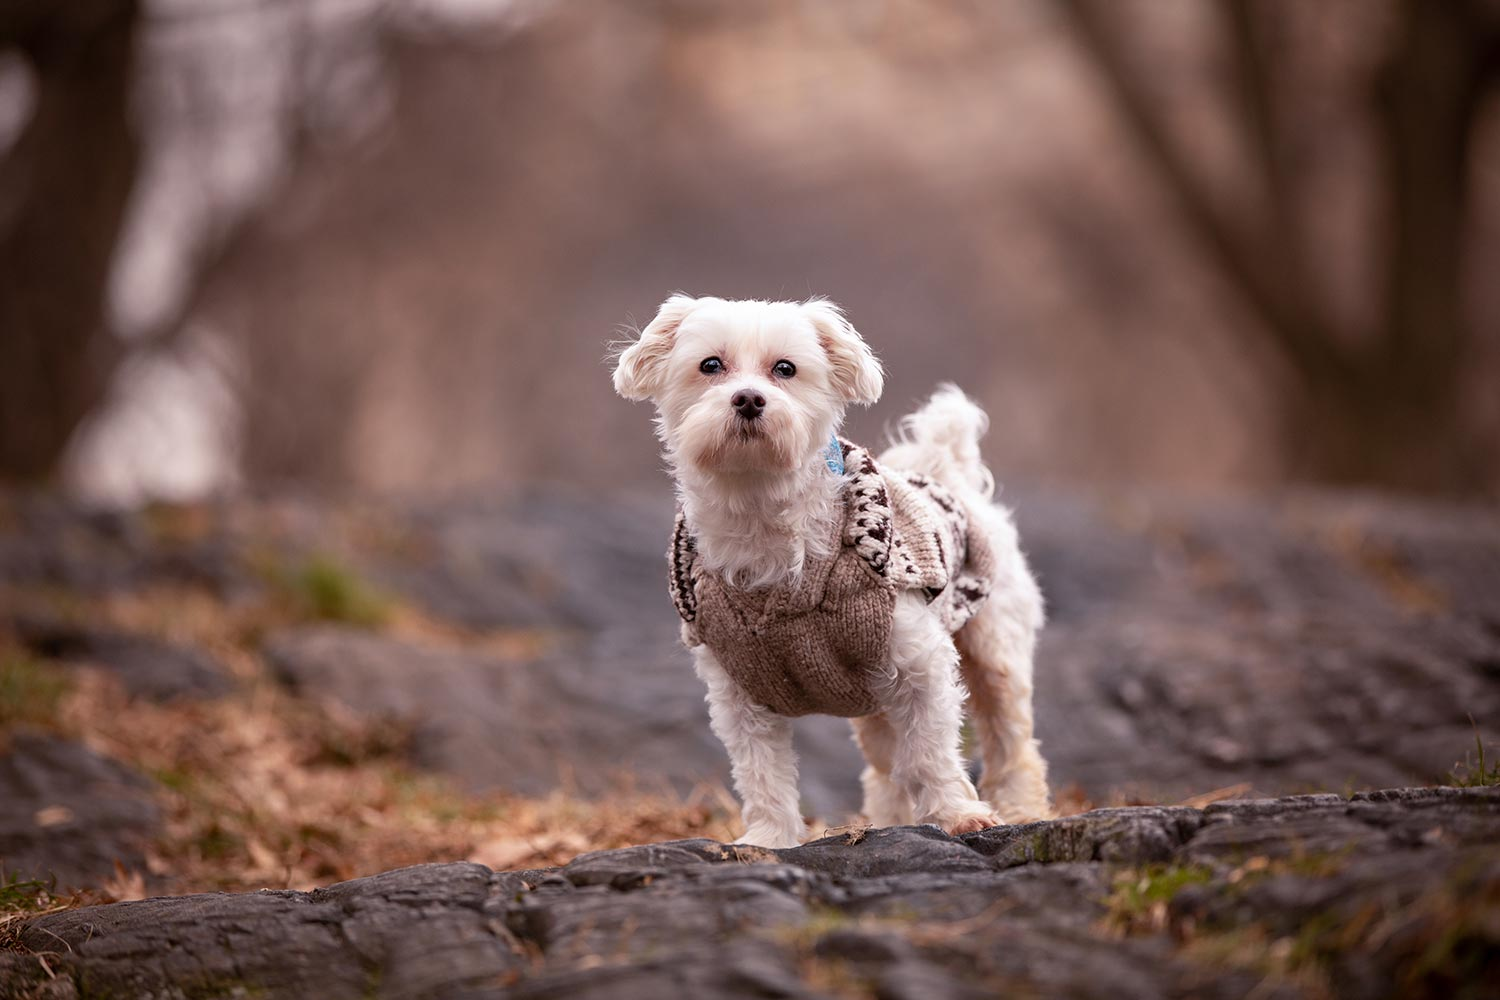 Wiley - NYC dog photographer